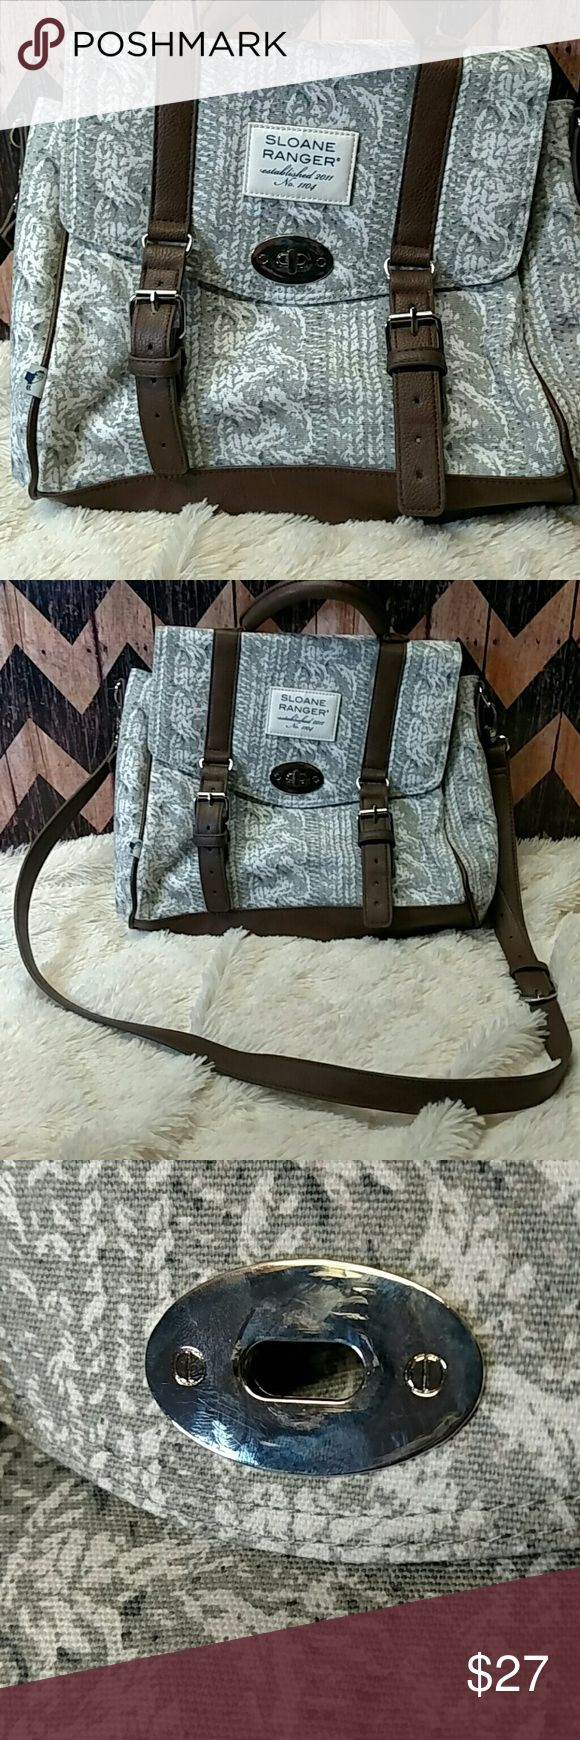 Sloane Ranger Top Handle Bag Sloane Ranger Top Handle cable knit print in very excellent condition!! Like NEW Sloane Ranger Bags Satchels